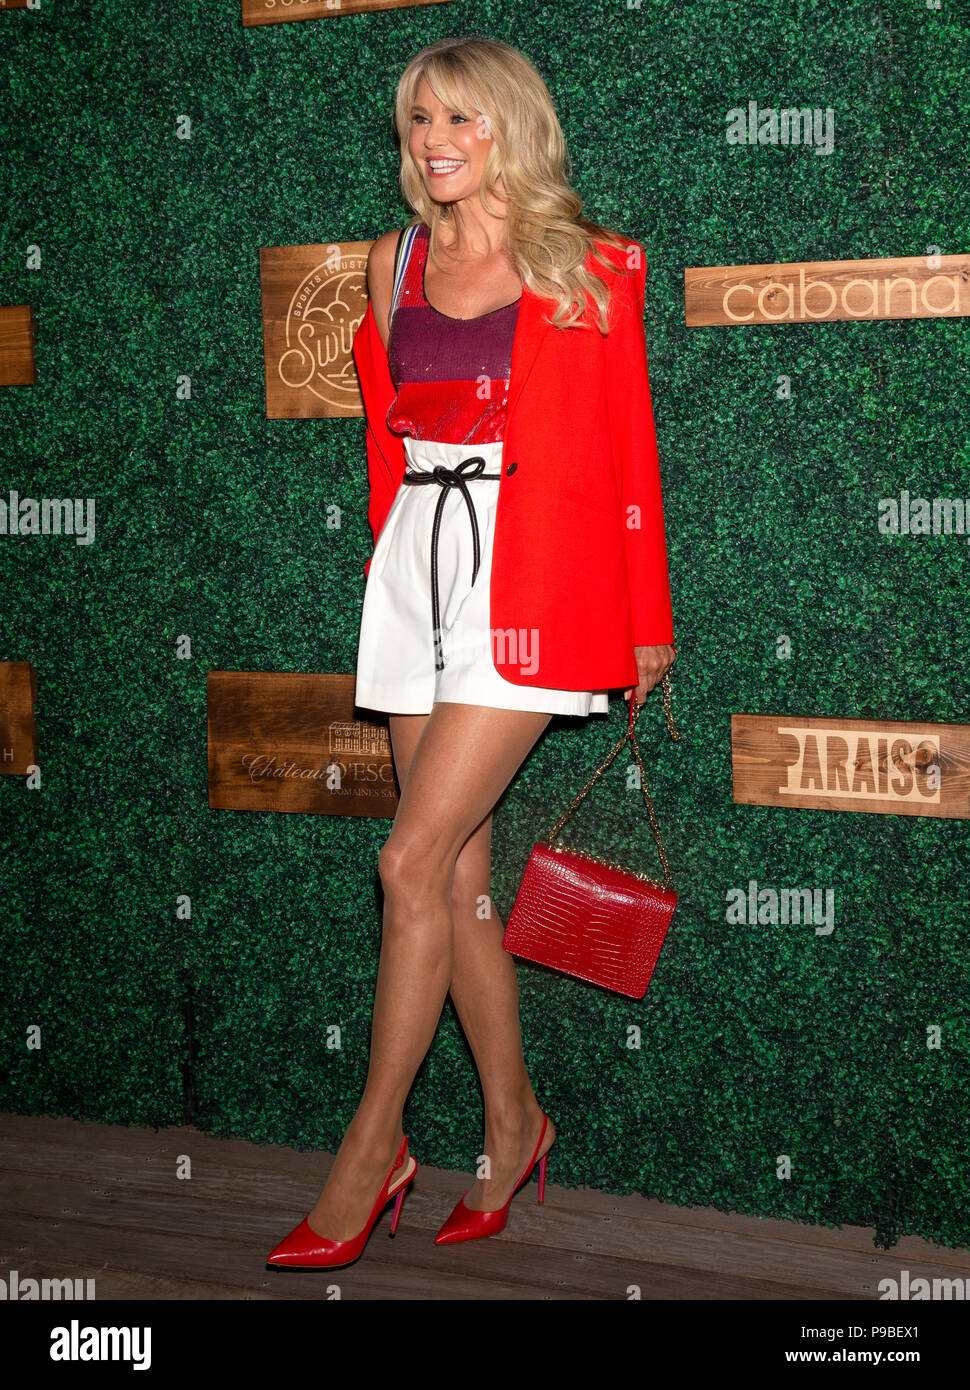 MIAMI, FL - JULY 15: Christie Brinkley attends the 2018 Sports Illustrated Swimsuit show at PARAISO during Miami Swim Week at The W Hotel South Beach Stock Photo